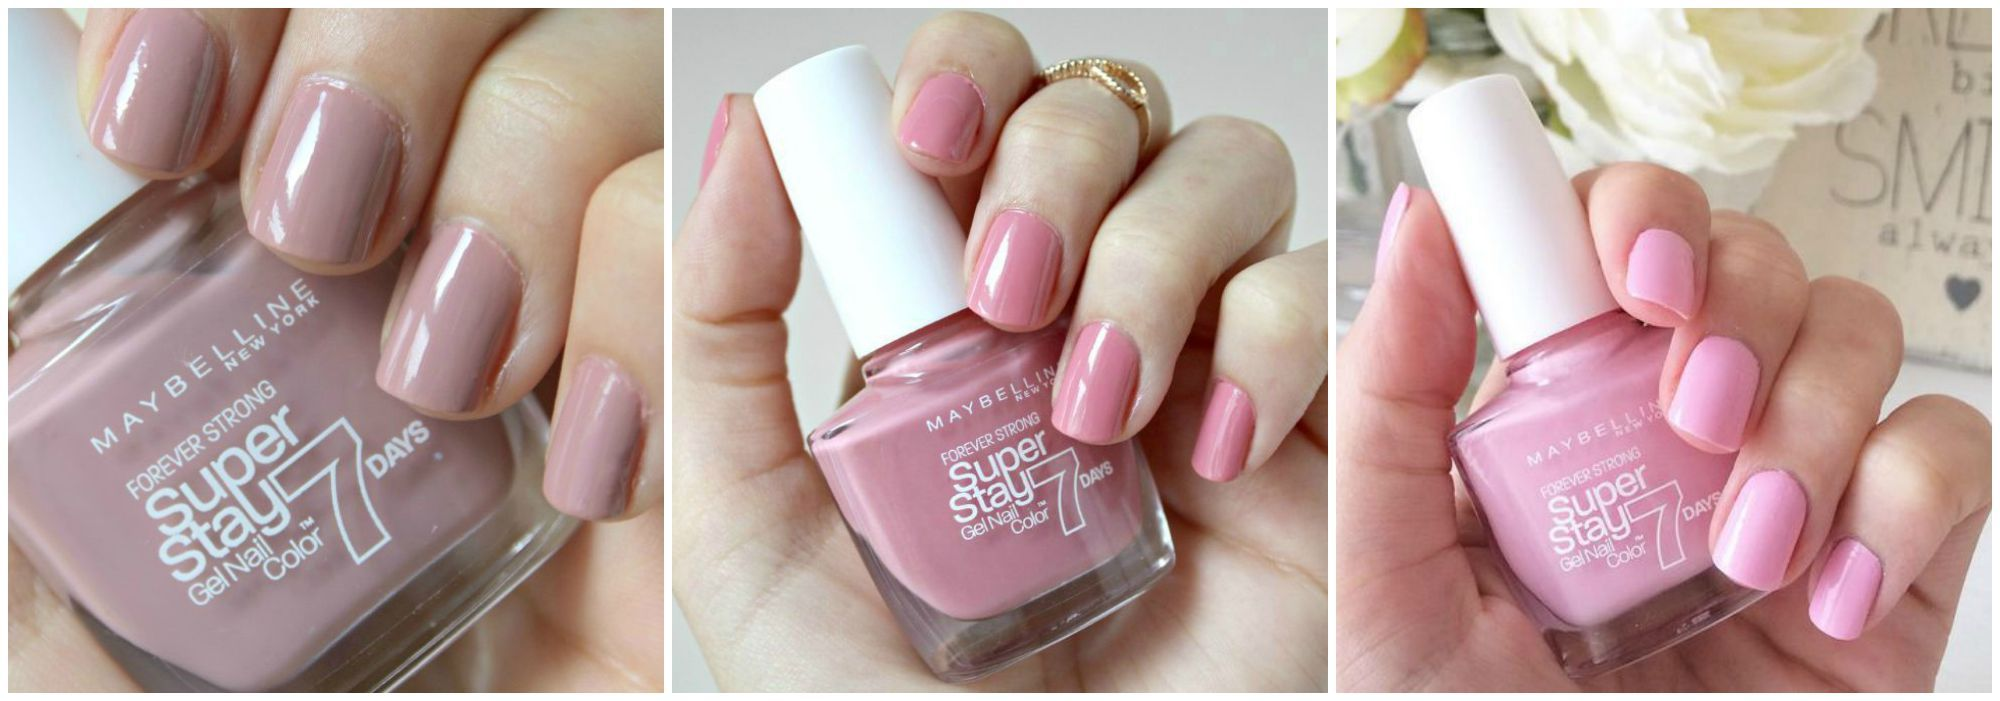 Maybelline Superstay 7 Day Nail Colours The Swatches Maybelline Nail Polish Nail Colors Nails